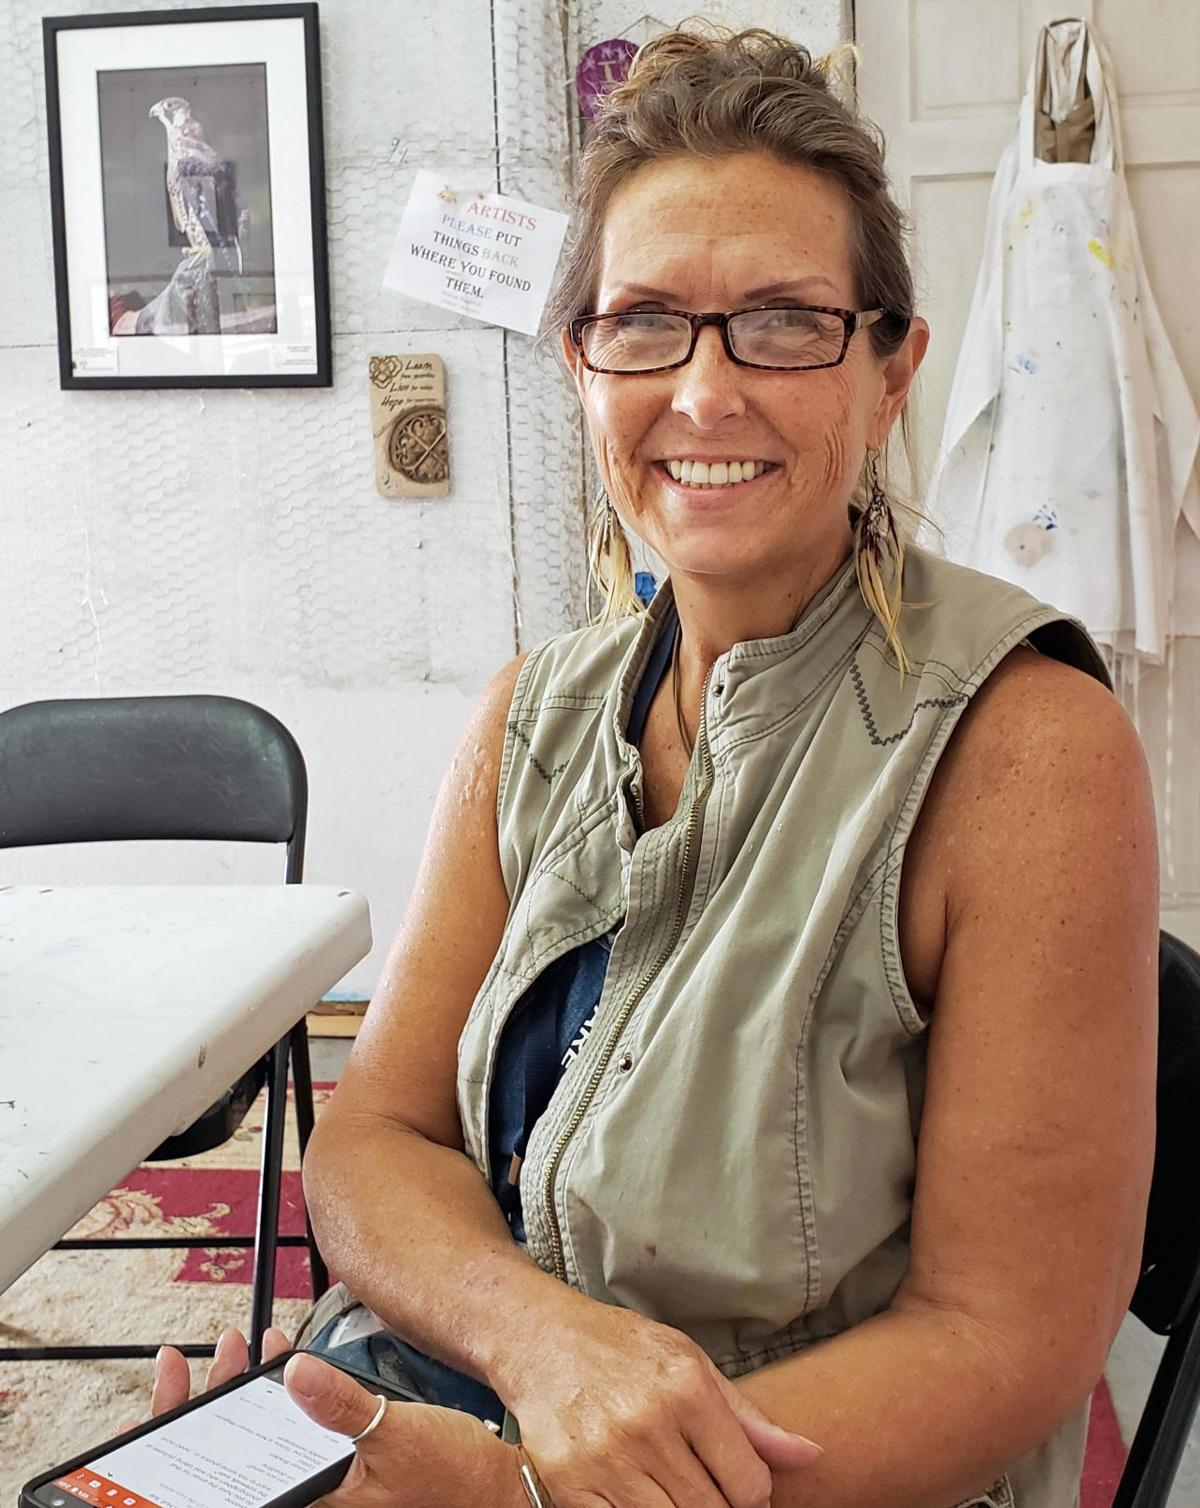 Healing effects of art: Wife's art therapy training helps couple deal with spouse's cancer